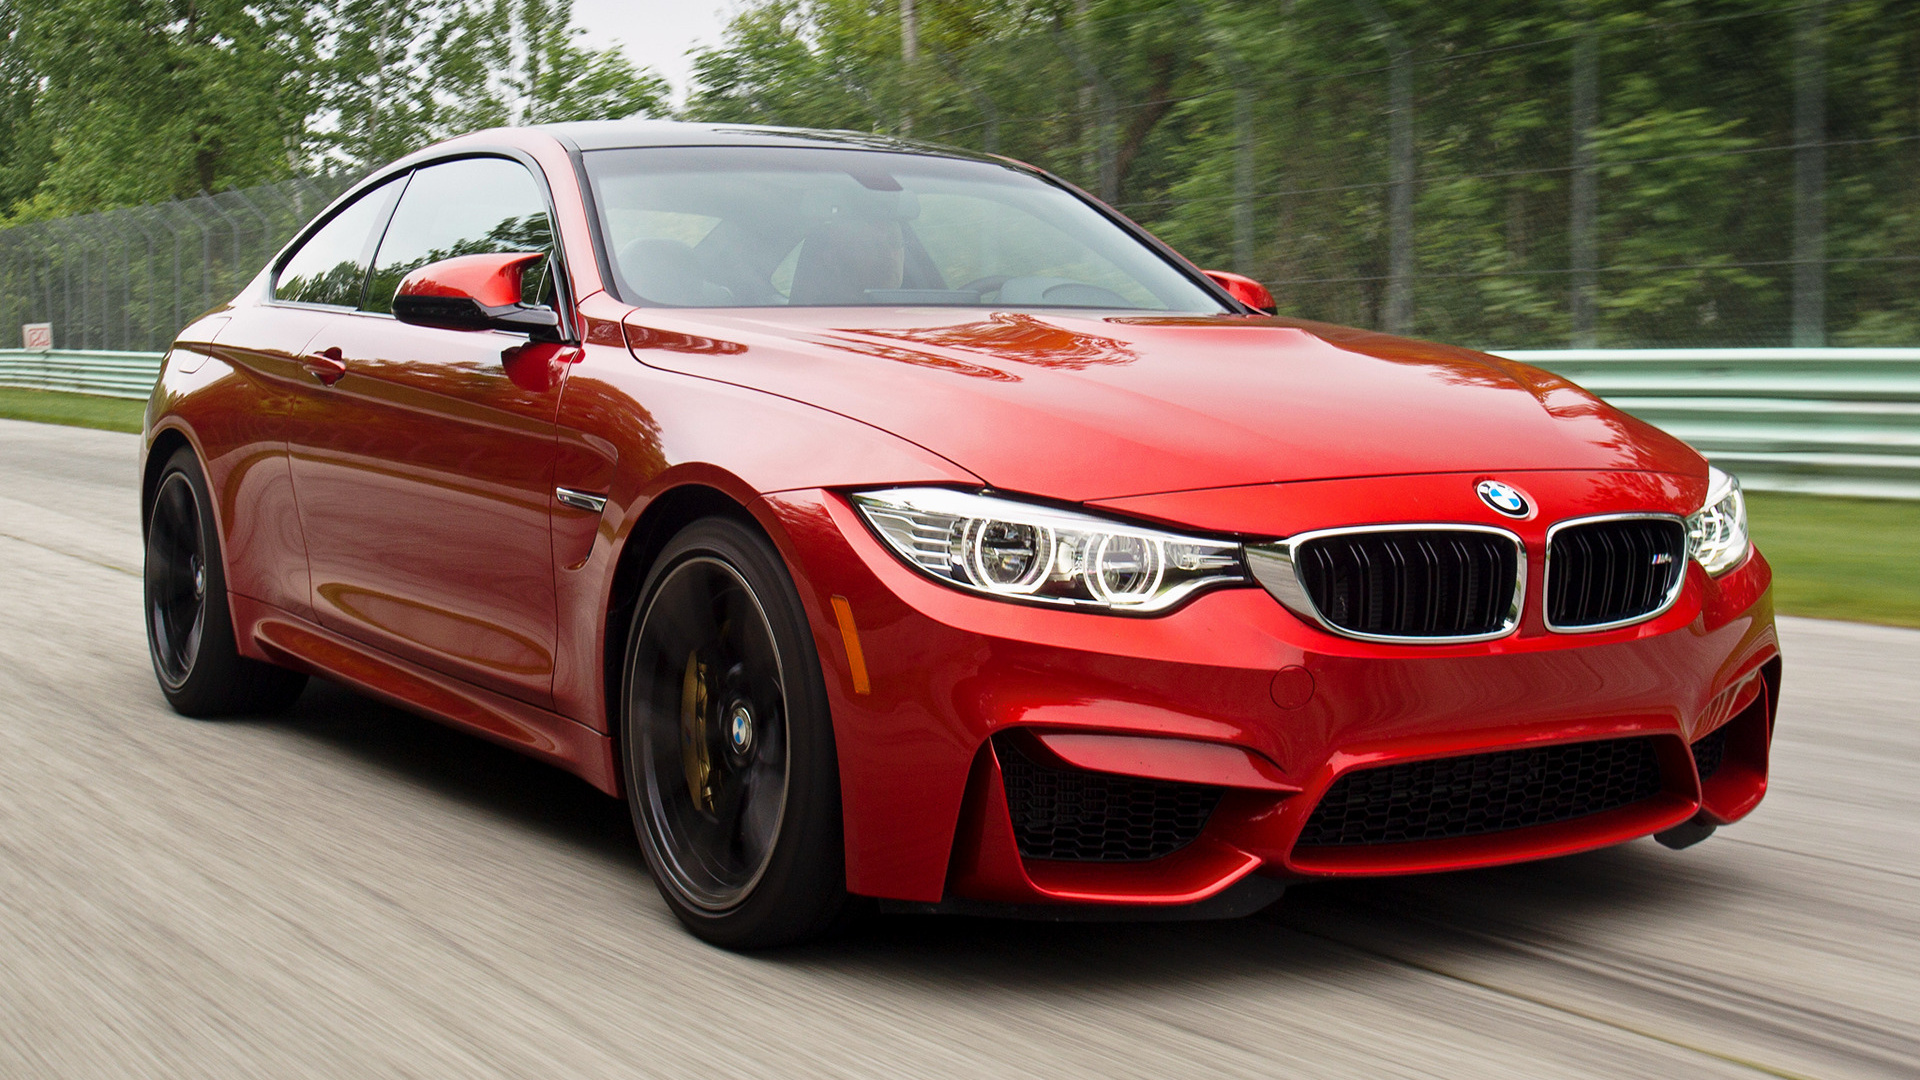 Hd Wallpapers Of New Audi Cars 2015 Bmw M4 Coupe Us Wallpapers And Hd Images Car Pixel